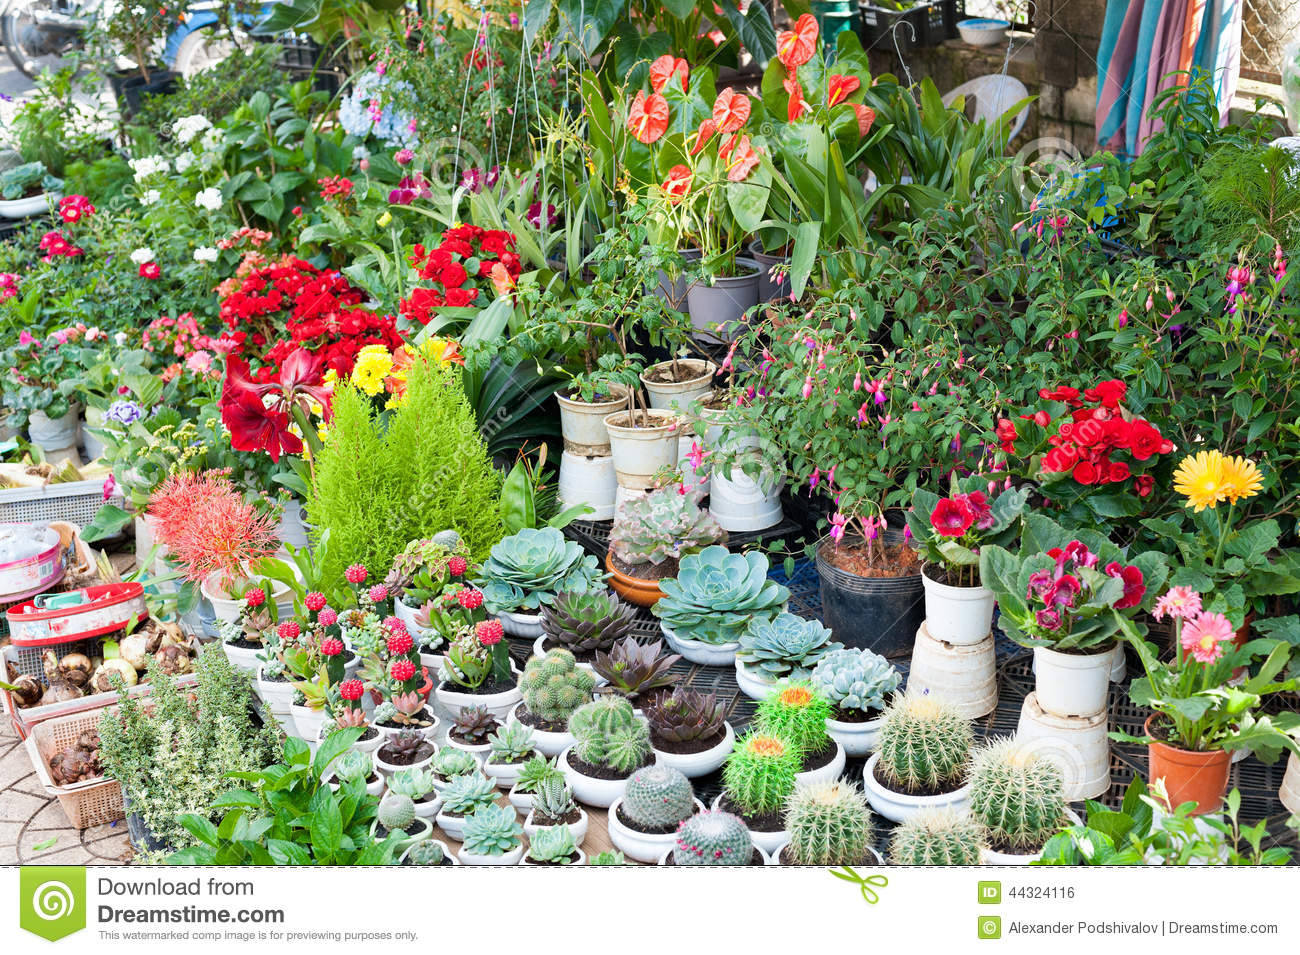 Indoor Plants For Sale Stock Photo - Image: 44324116